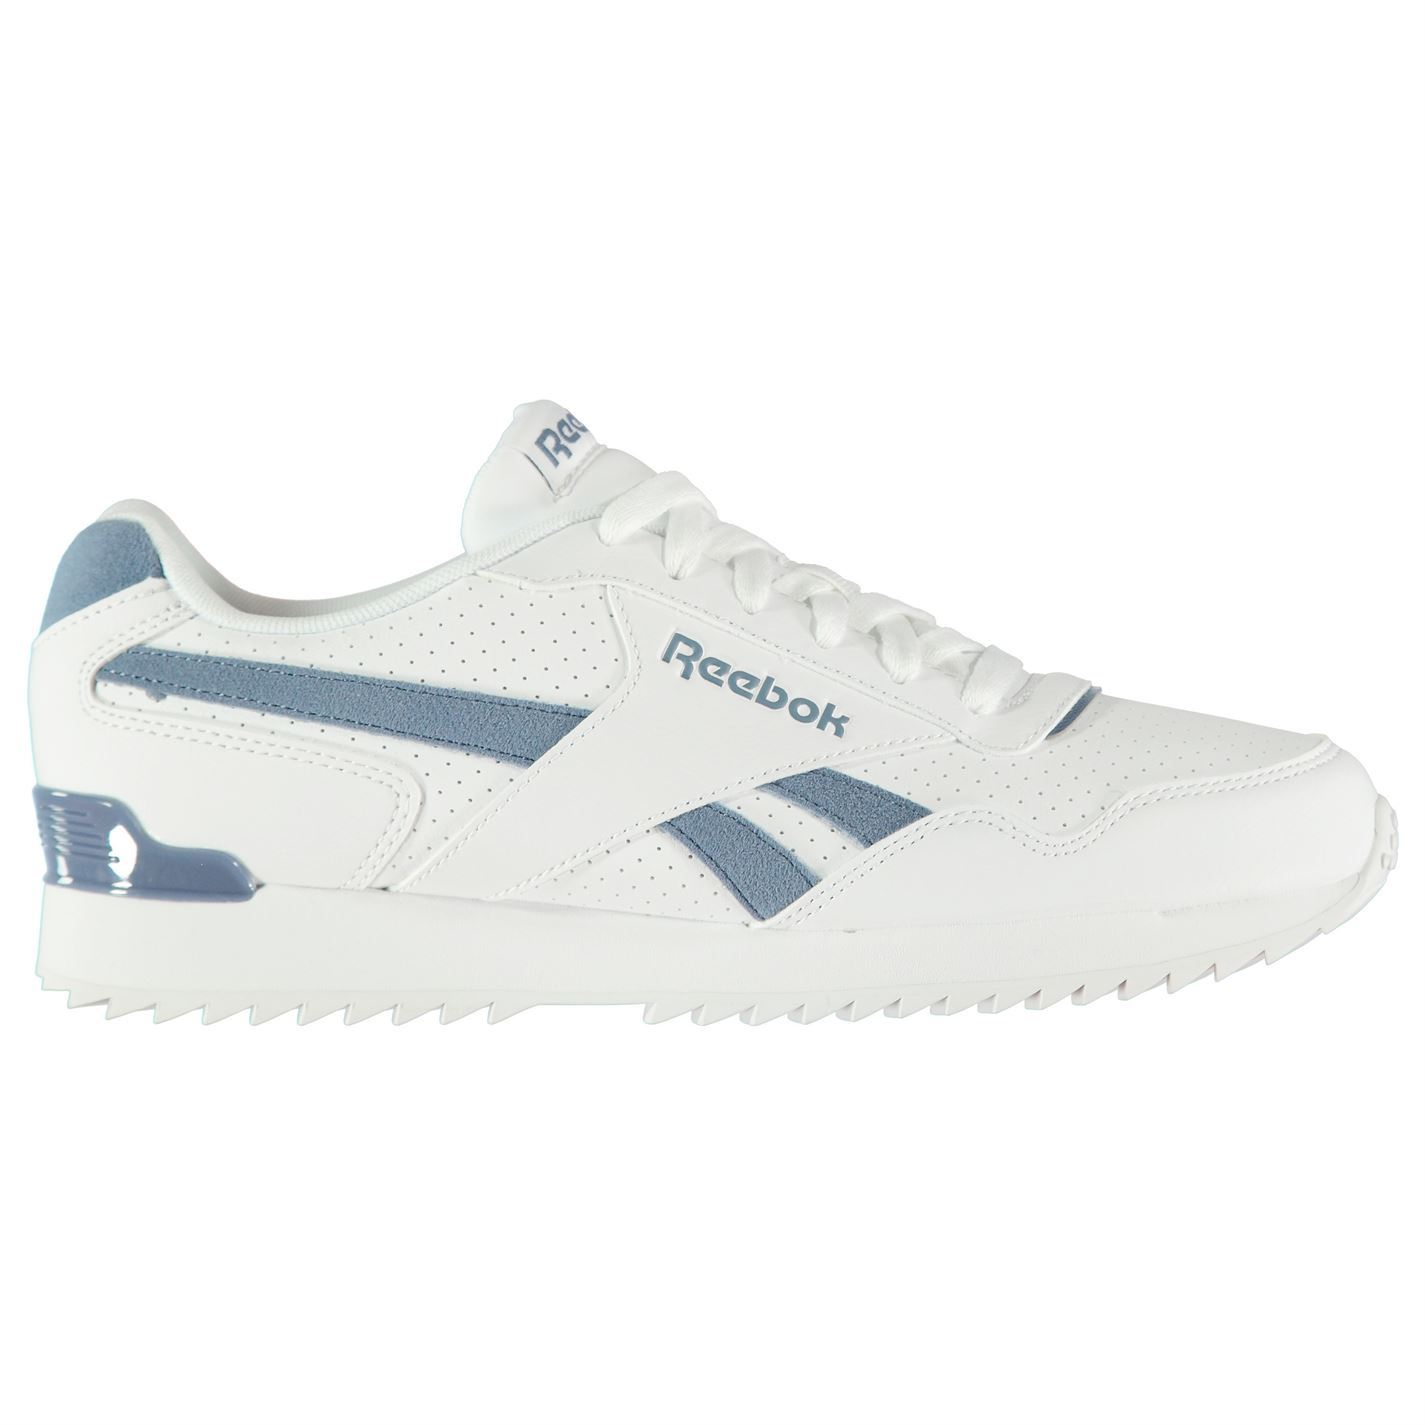 Reebok Royal Glide Ripple Clip Runners Sneakers  Uomo Gents Runners Clip Laces Fastened Padded 82dfcb